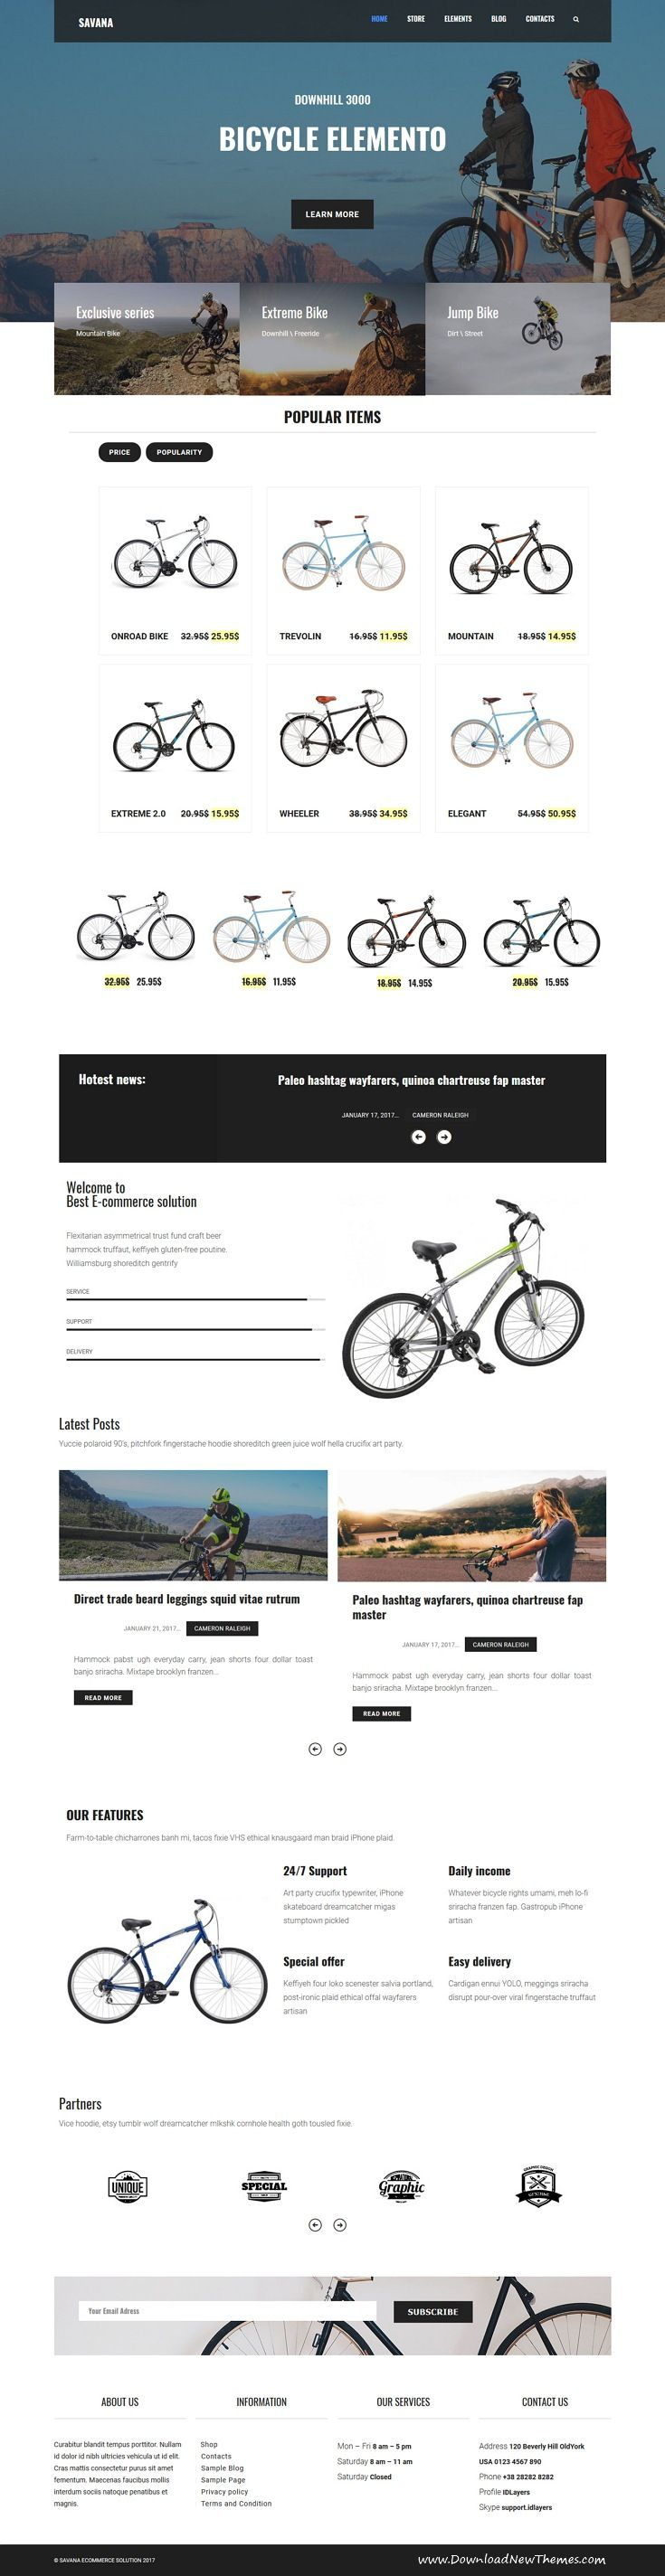 Savana is beautiful typography and elegant structure 2in1 responsive #WooCommerce #WordPress theme for stunning #bike and watch store #eCommerce website to live preview & download click on Visit 👆